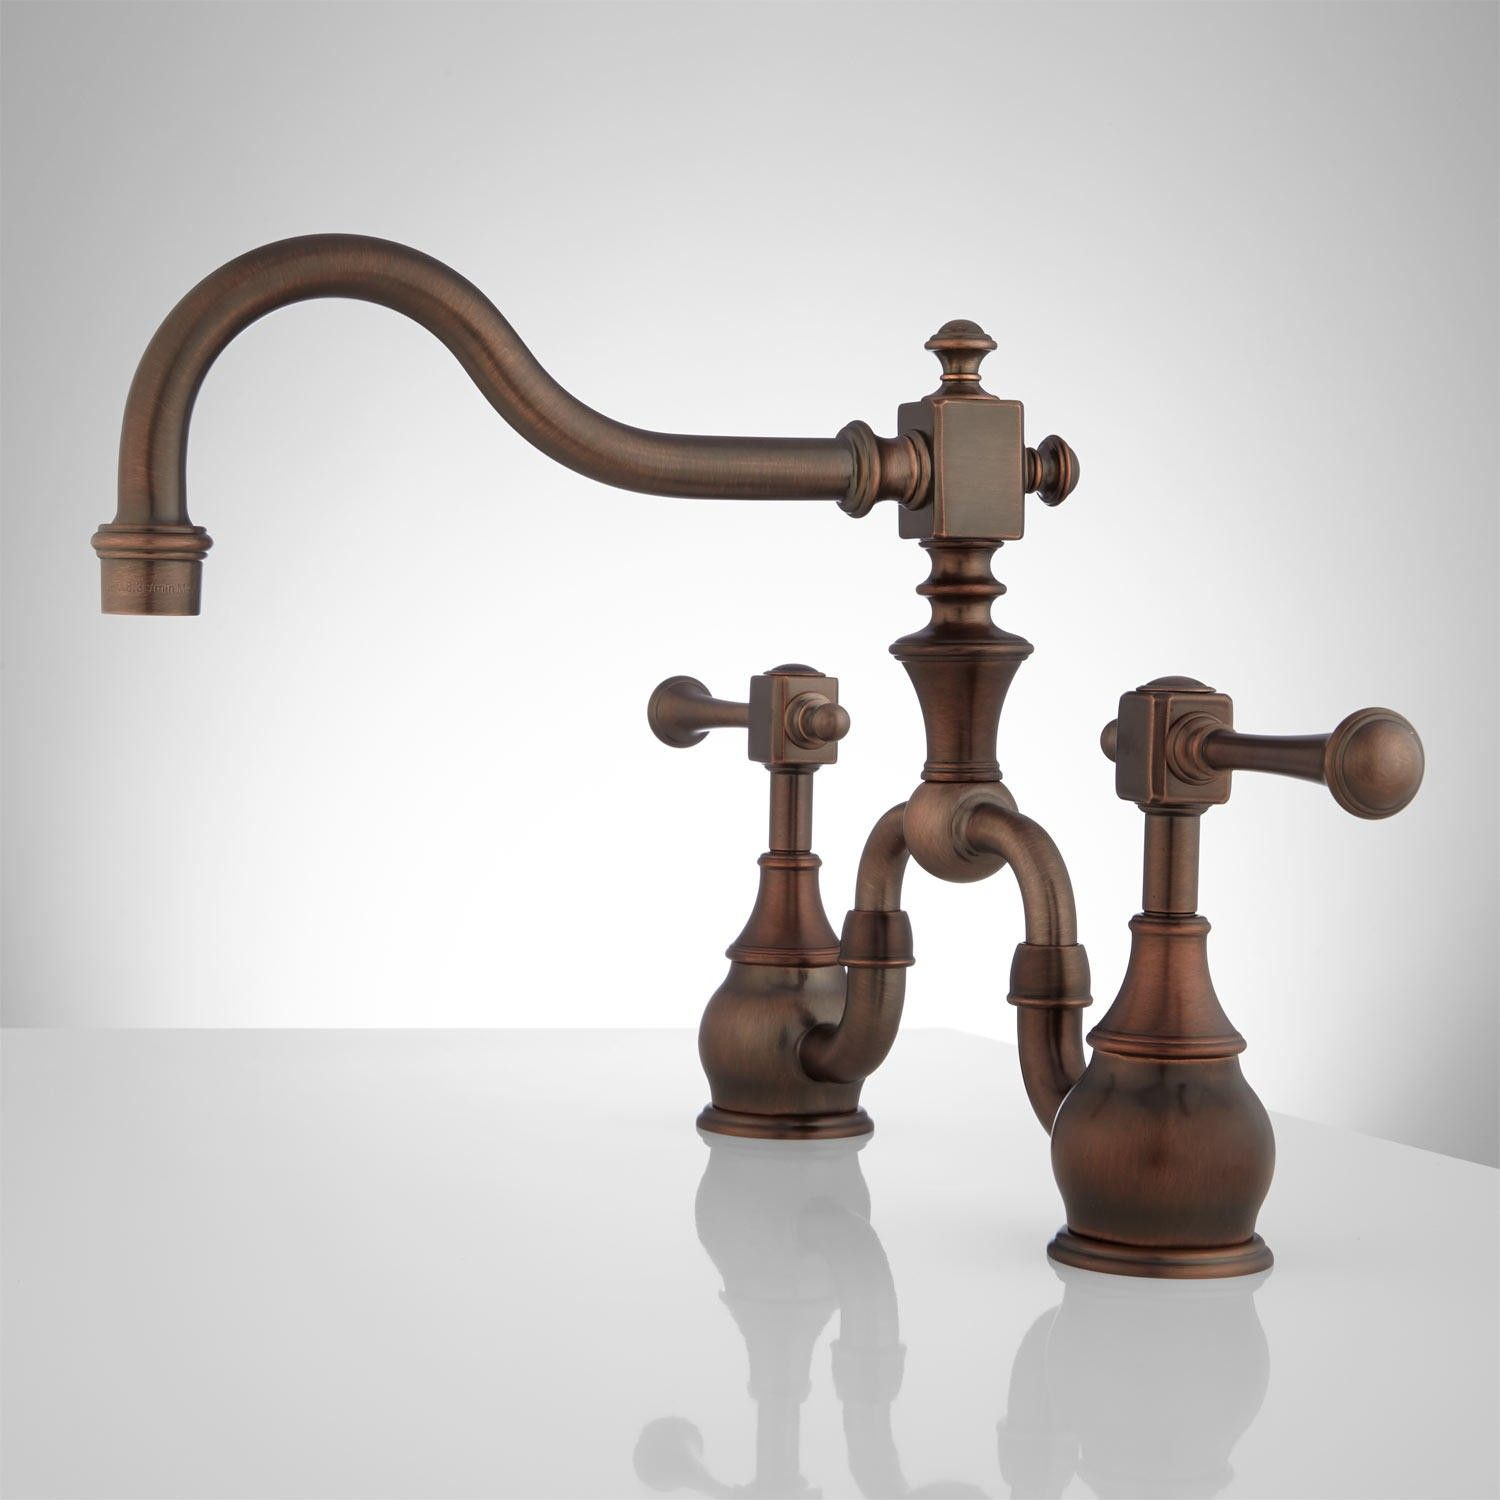 Find This Pin And More On Kitchen Ideas. The Vintage Bridge Kitchen Faucet  ...